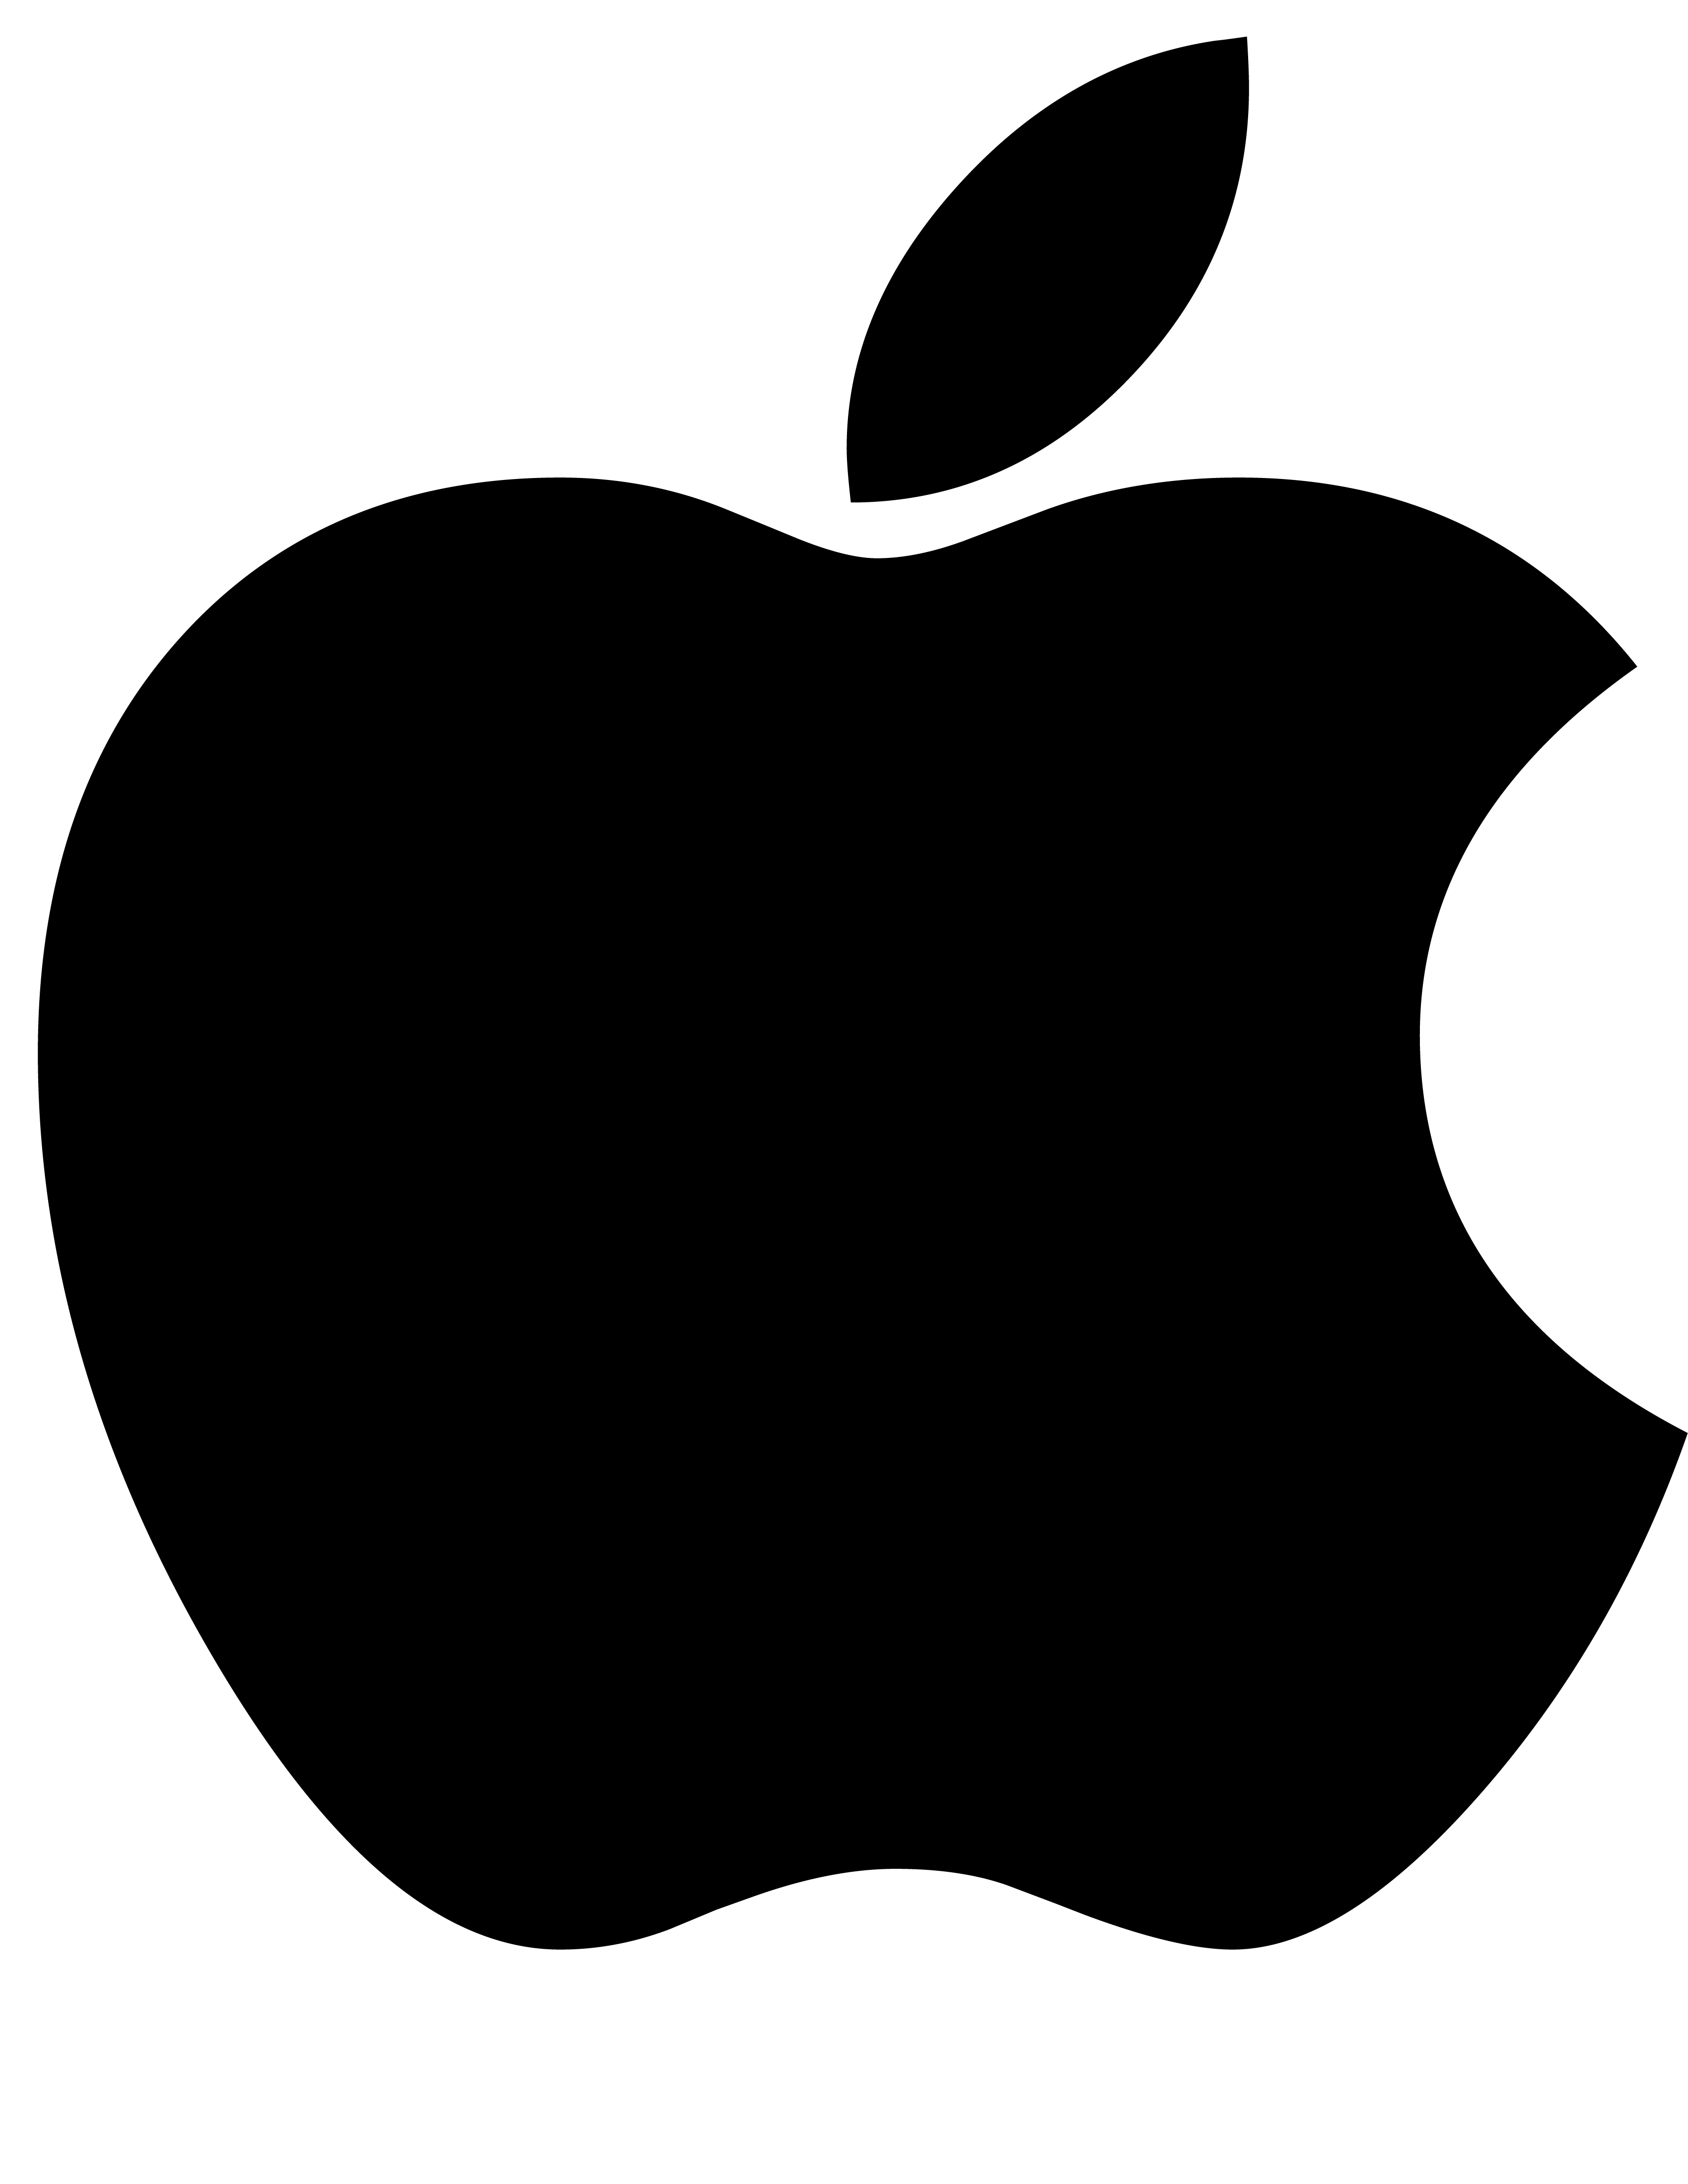 33 white apple logo clip art . Free cliparts that you can download to ...